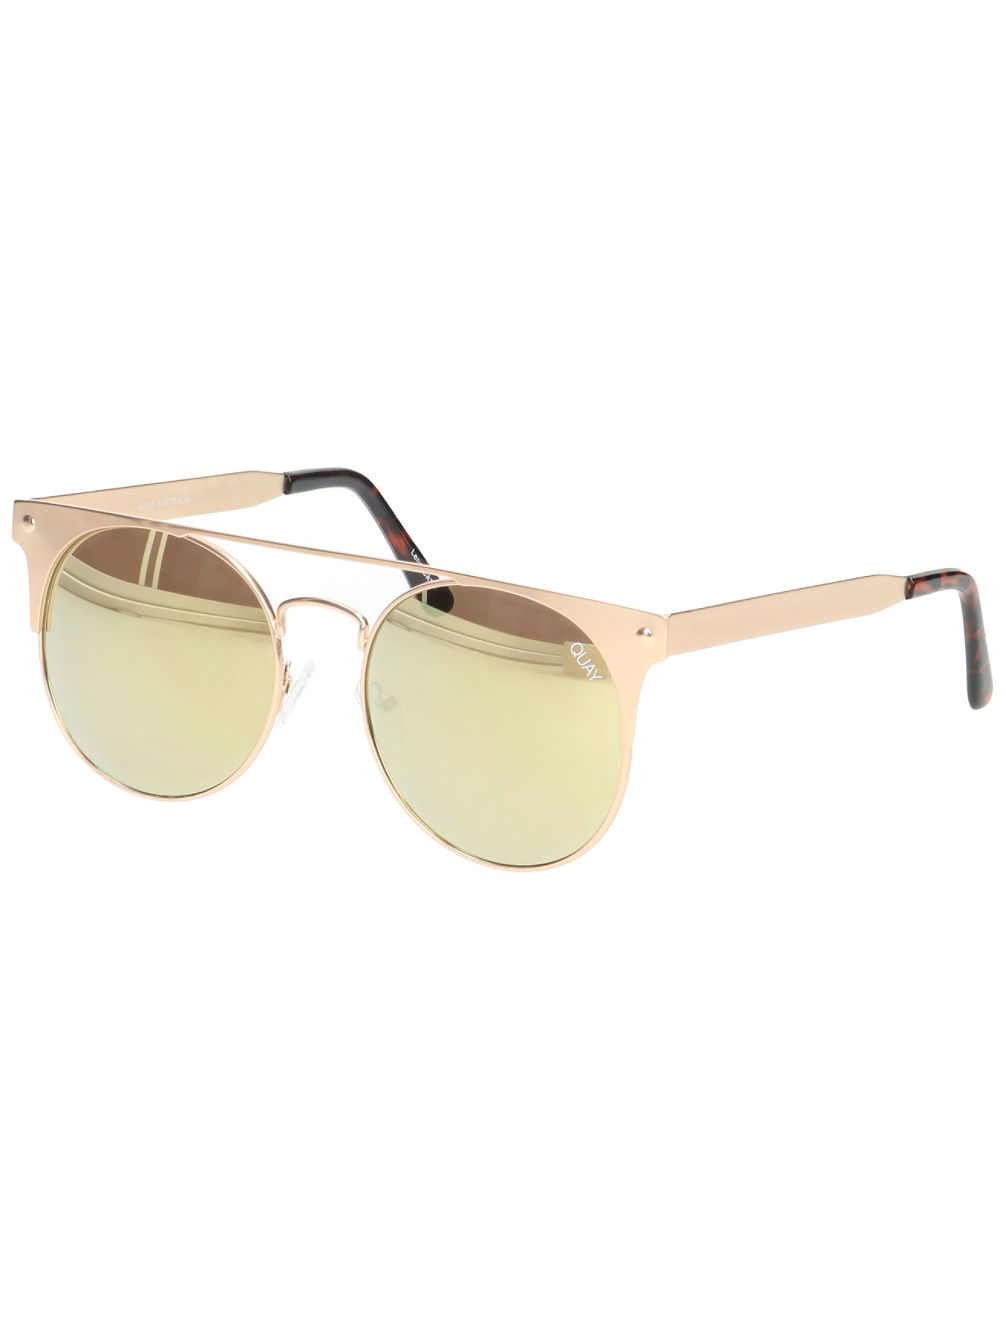 The In Crowd Gold Sonnenbrille